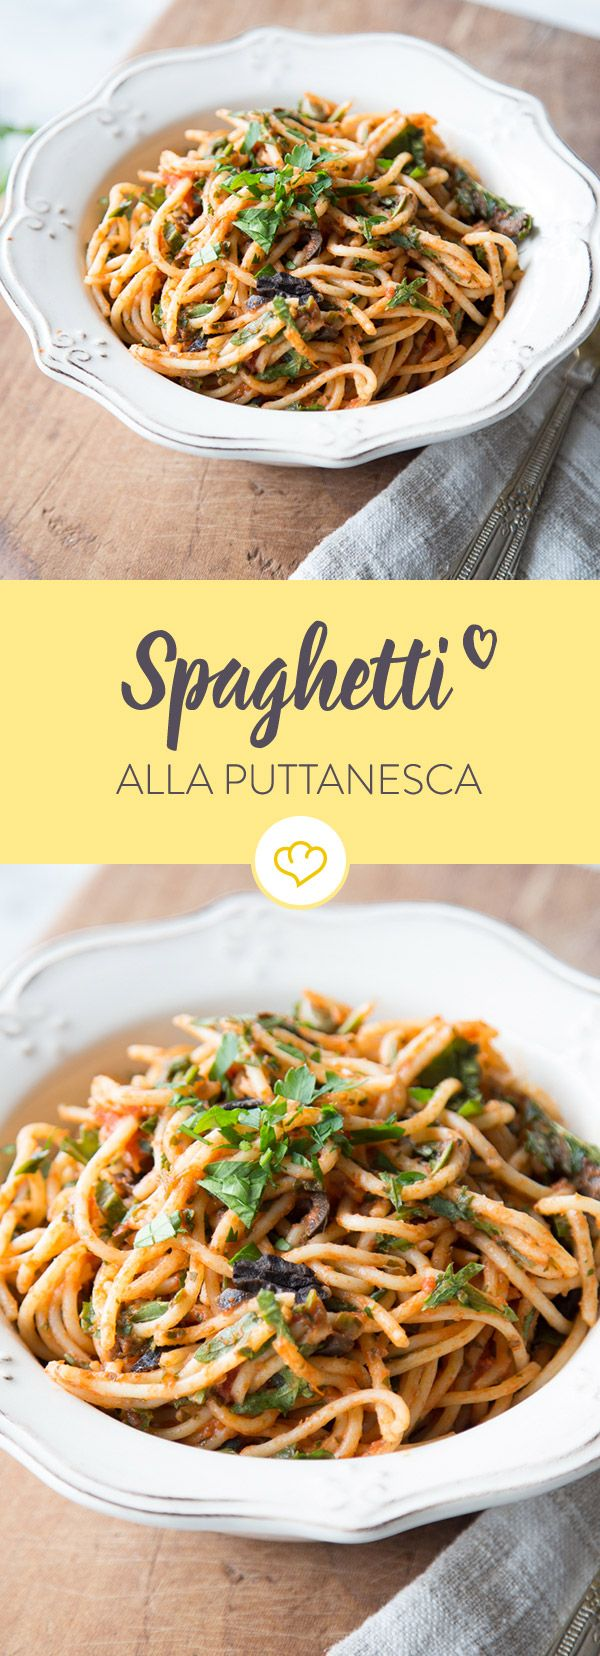 Photo of Spaghetti alla puttanesca: Pastaliebe aus Süditalien